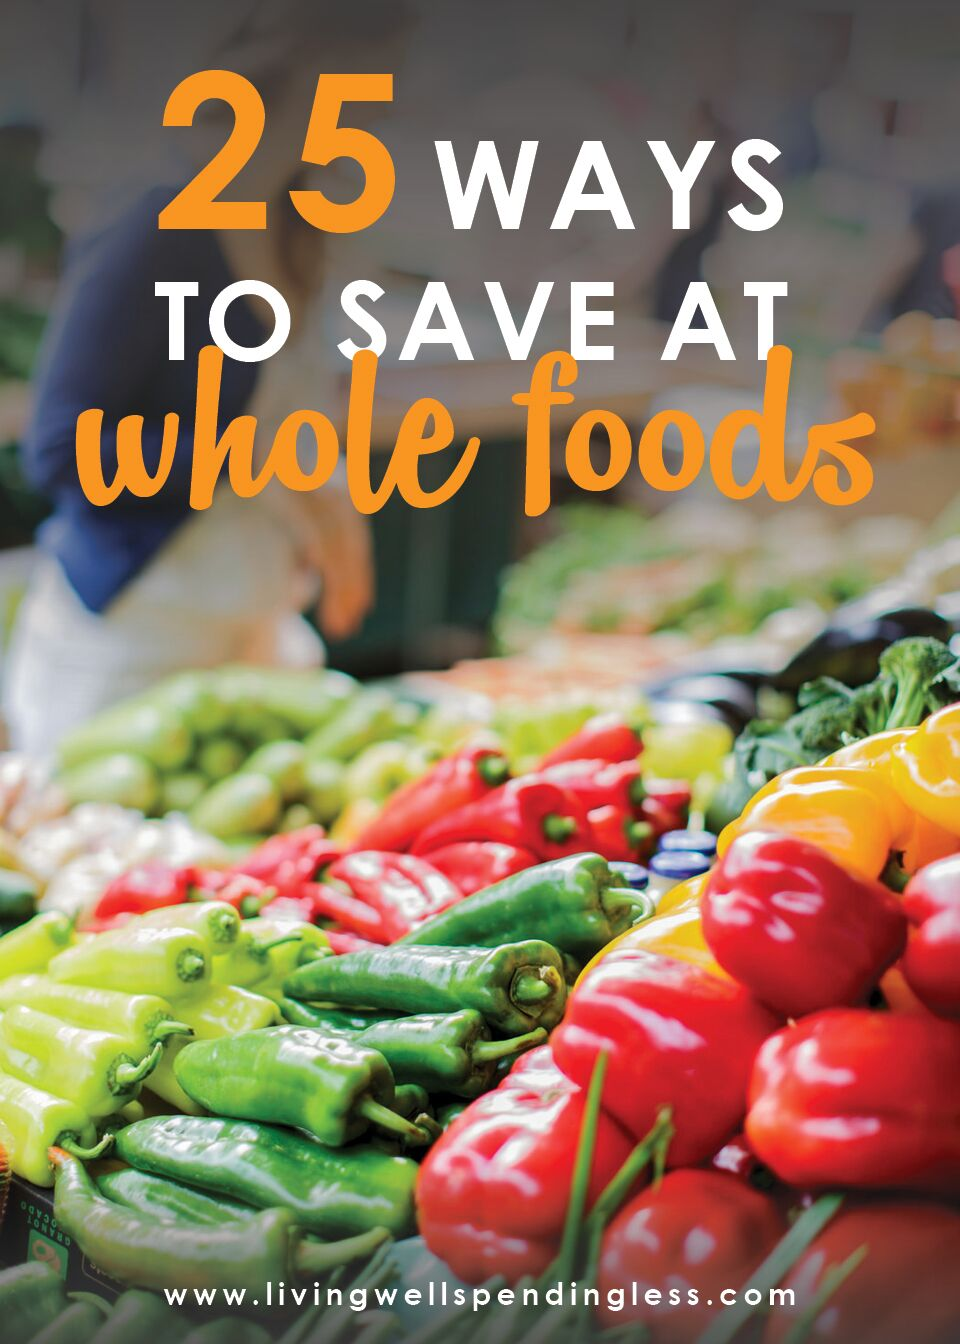 25 Ways to Save at Whole Foods